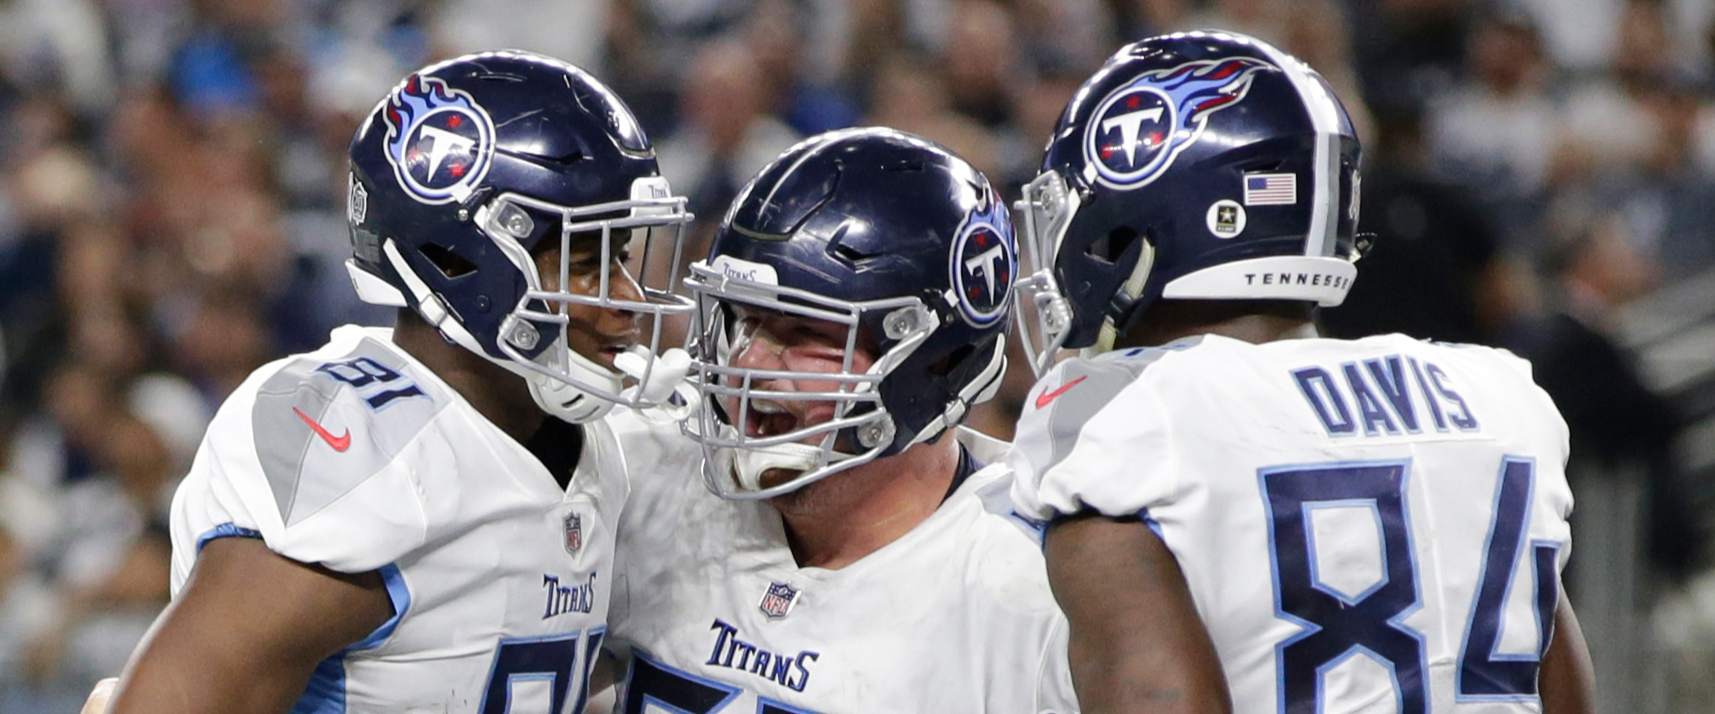 Who will the Titans choose to franchise tag?